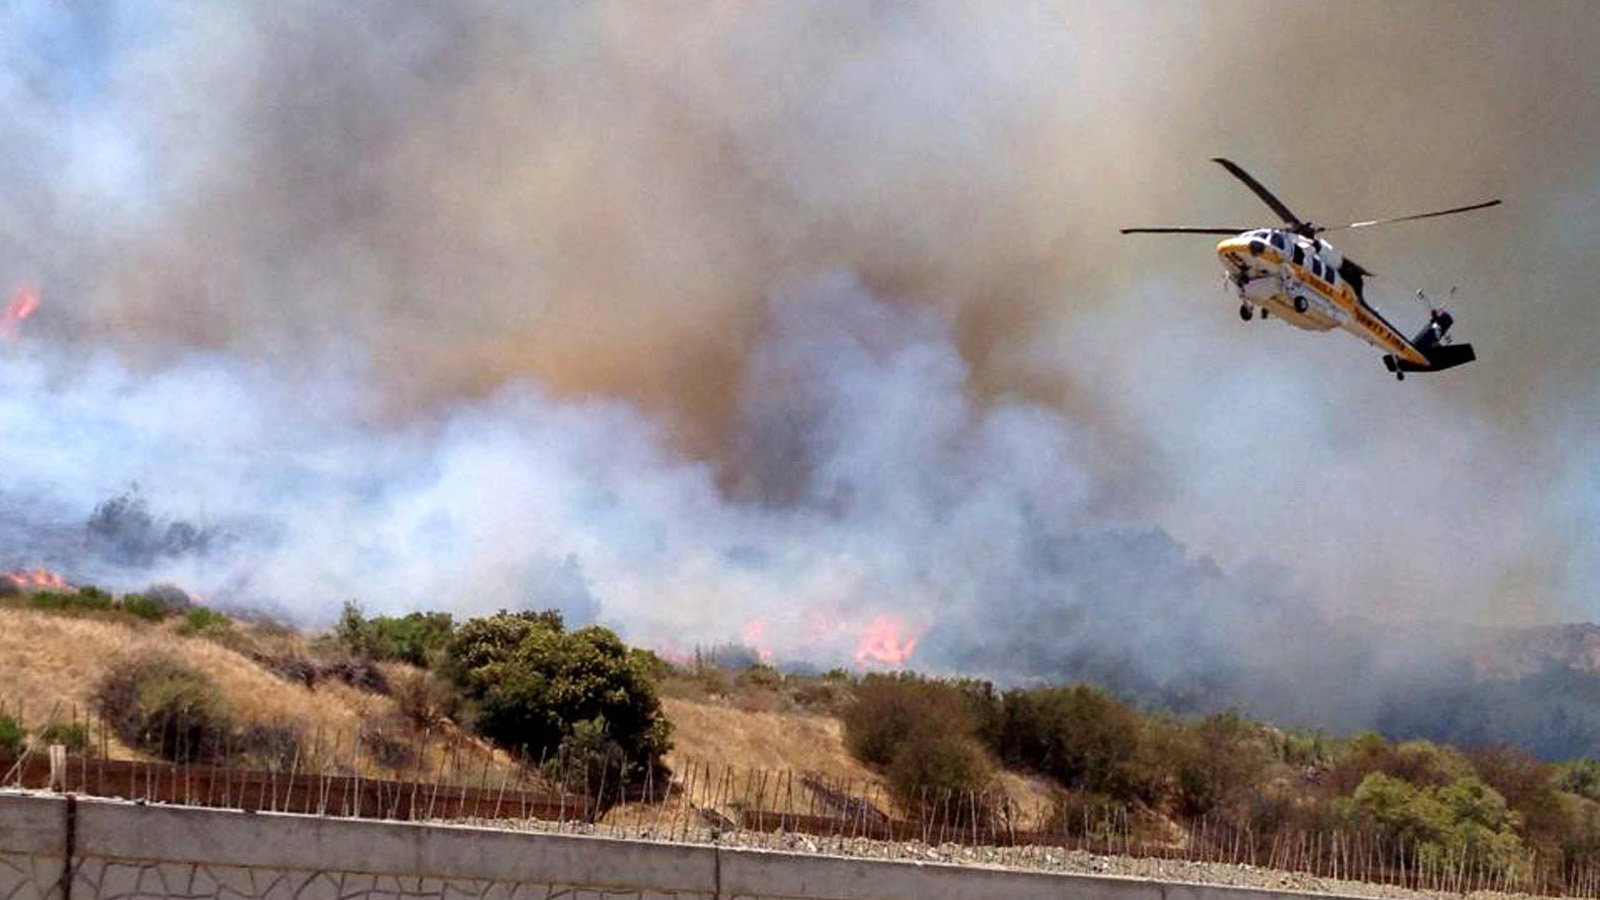 news062213coltranefire2